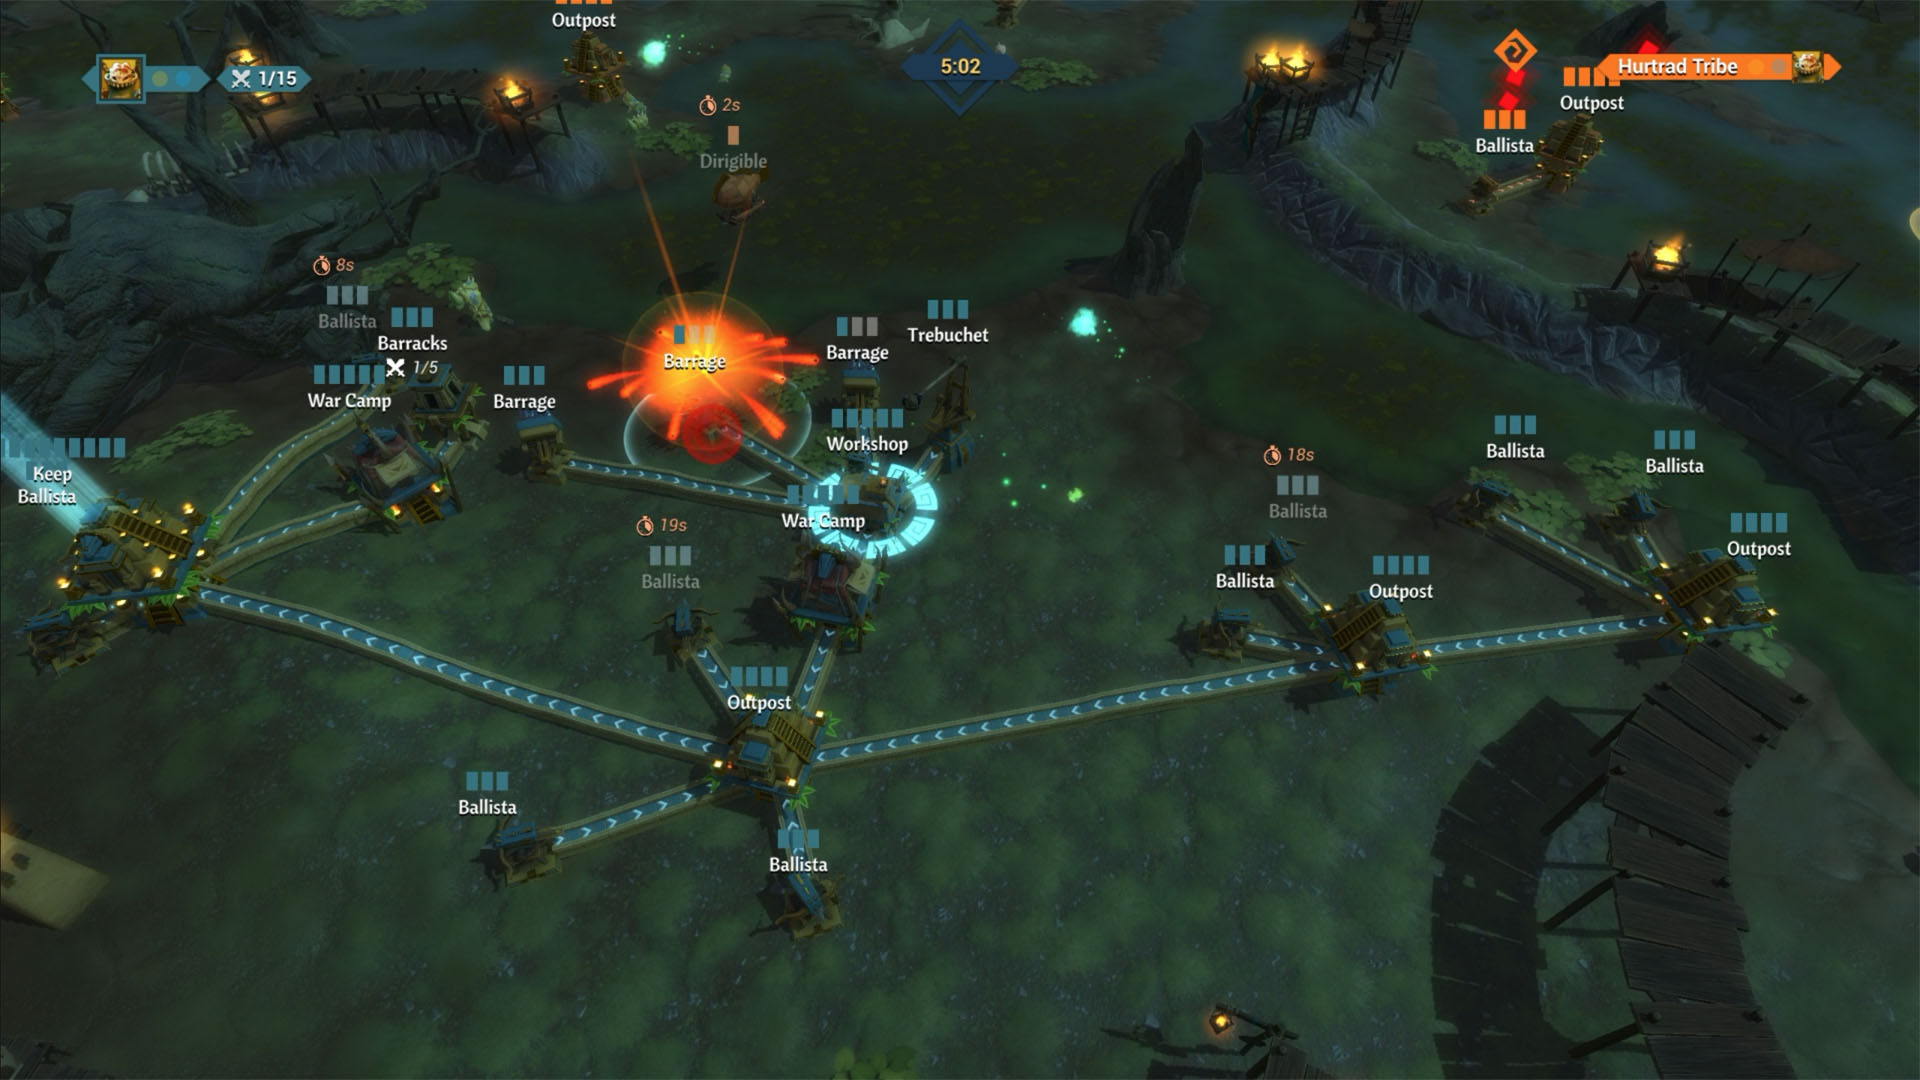 Siegecraft Commander offers a variety of battle environments across two campaigns.